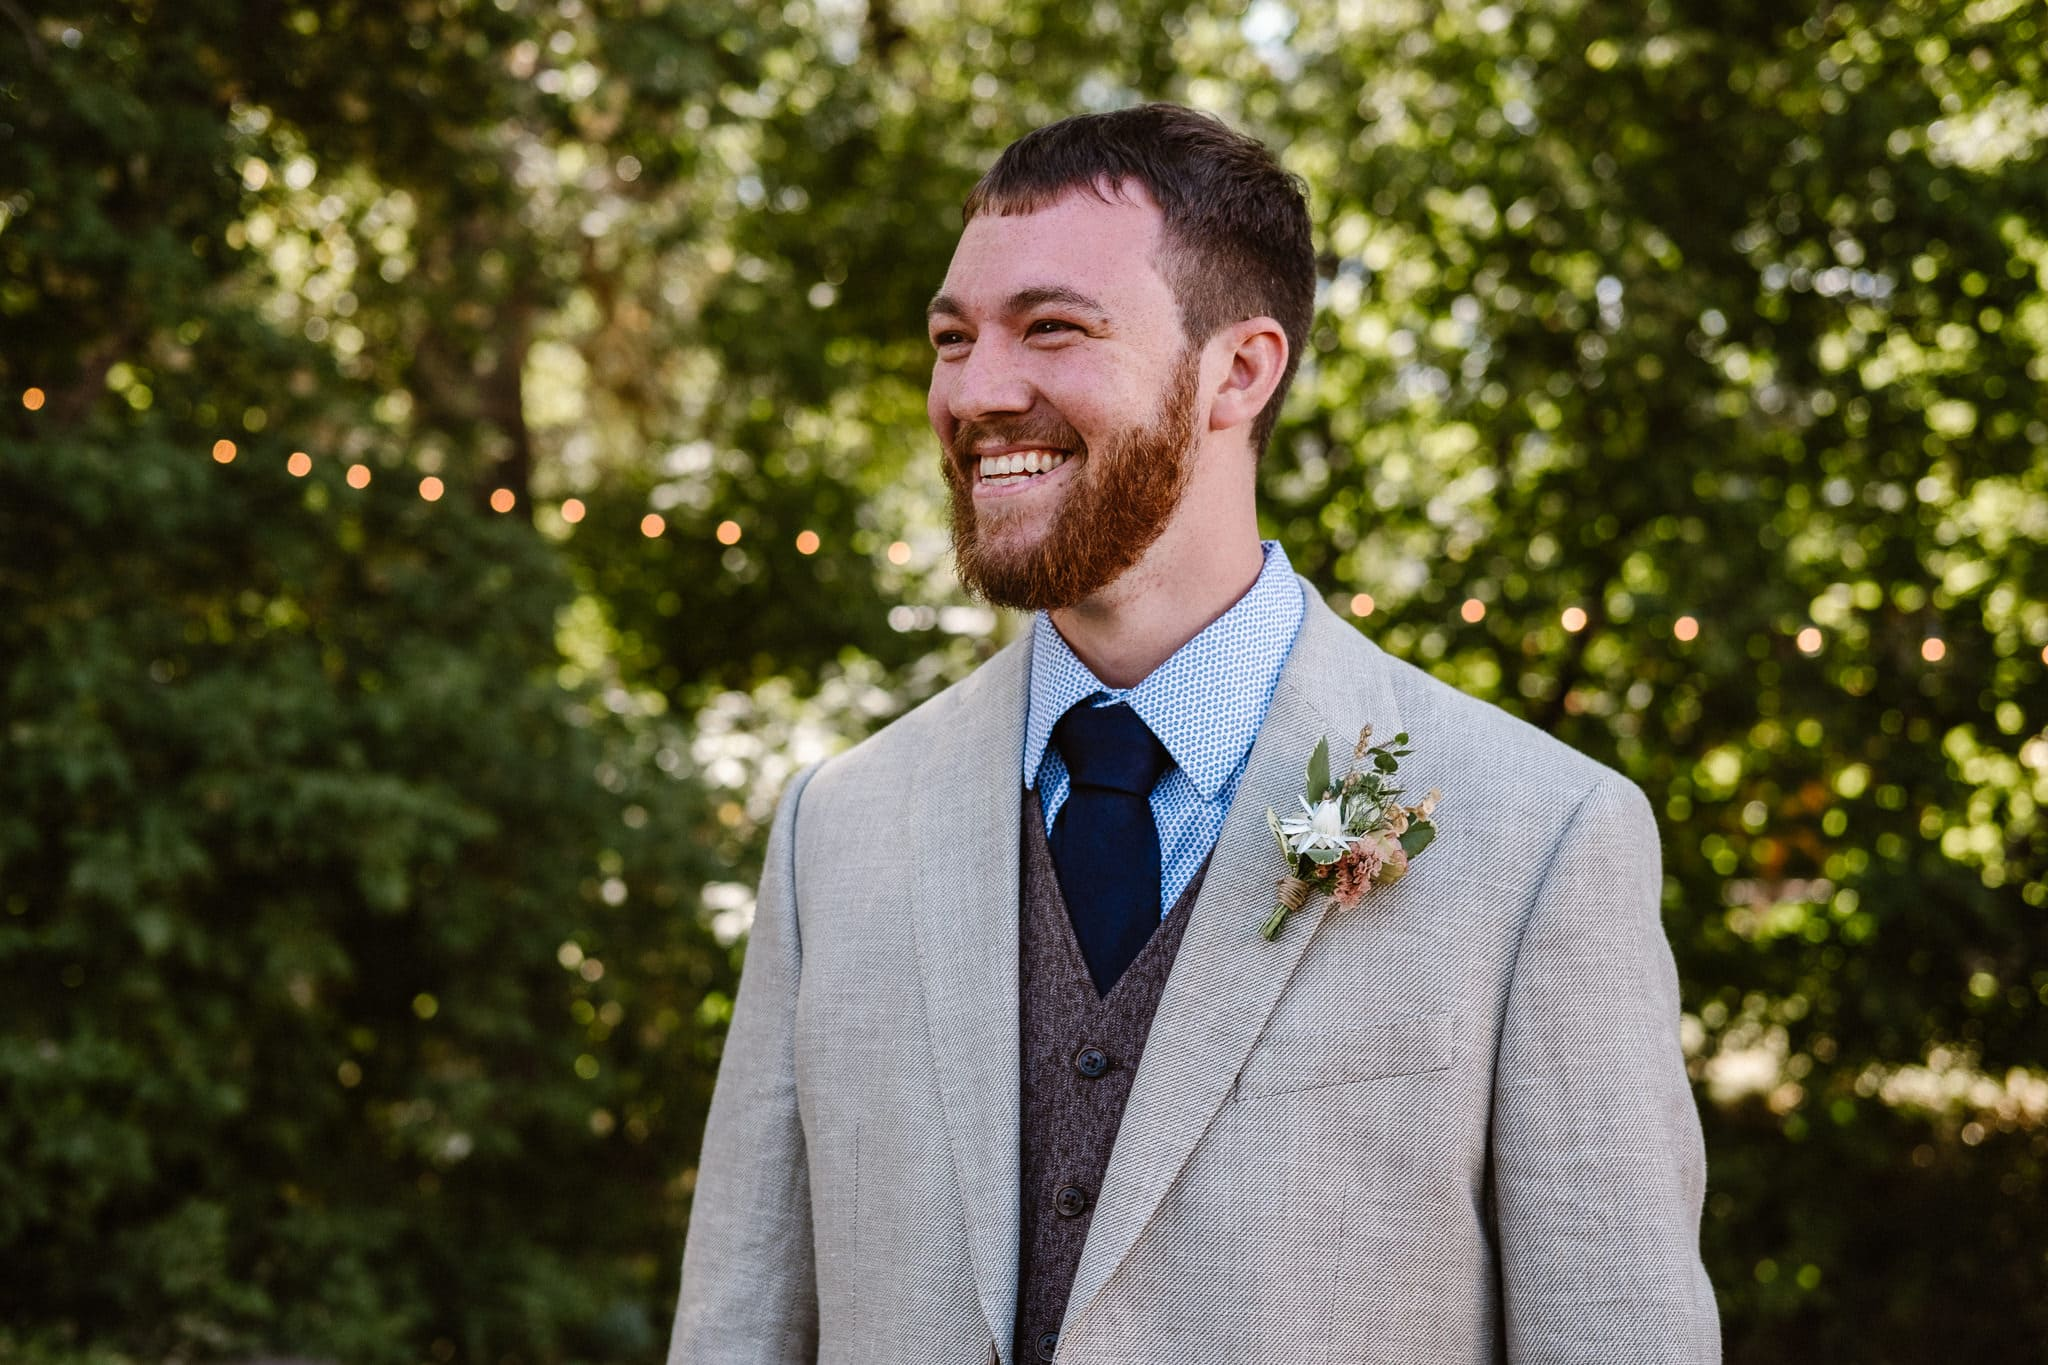 Lyons Farmette wedding photographer, Colorado intimate wedding photographer, groom portrait, groom wearing tan jacket and dark vest